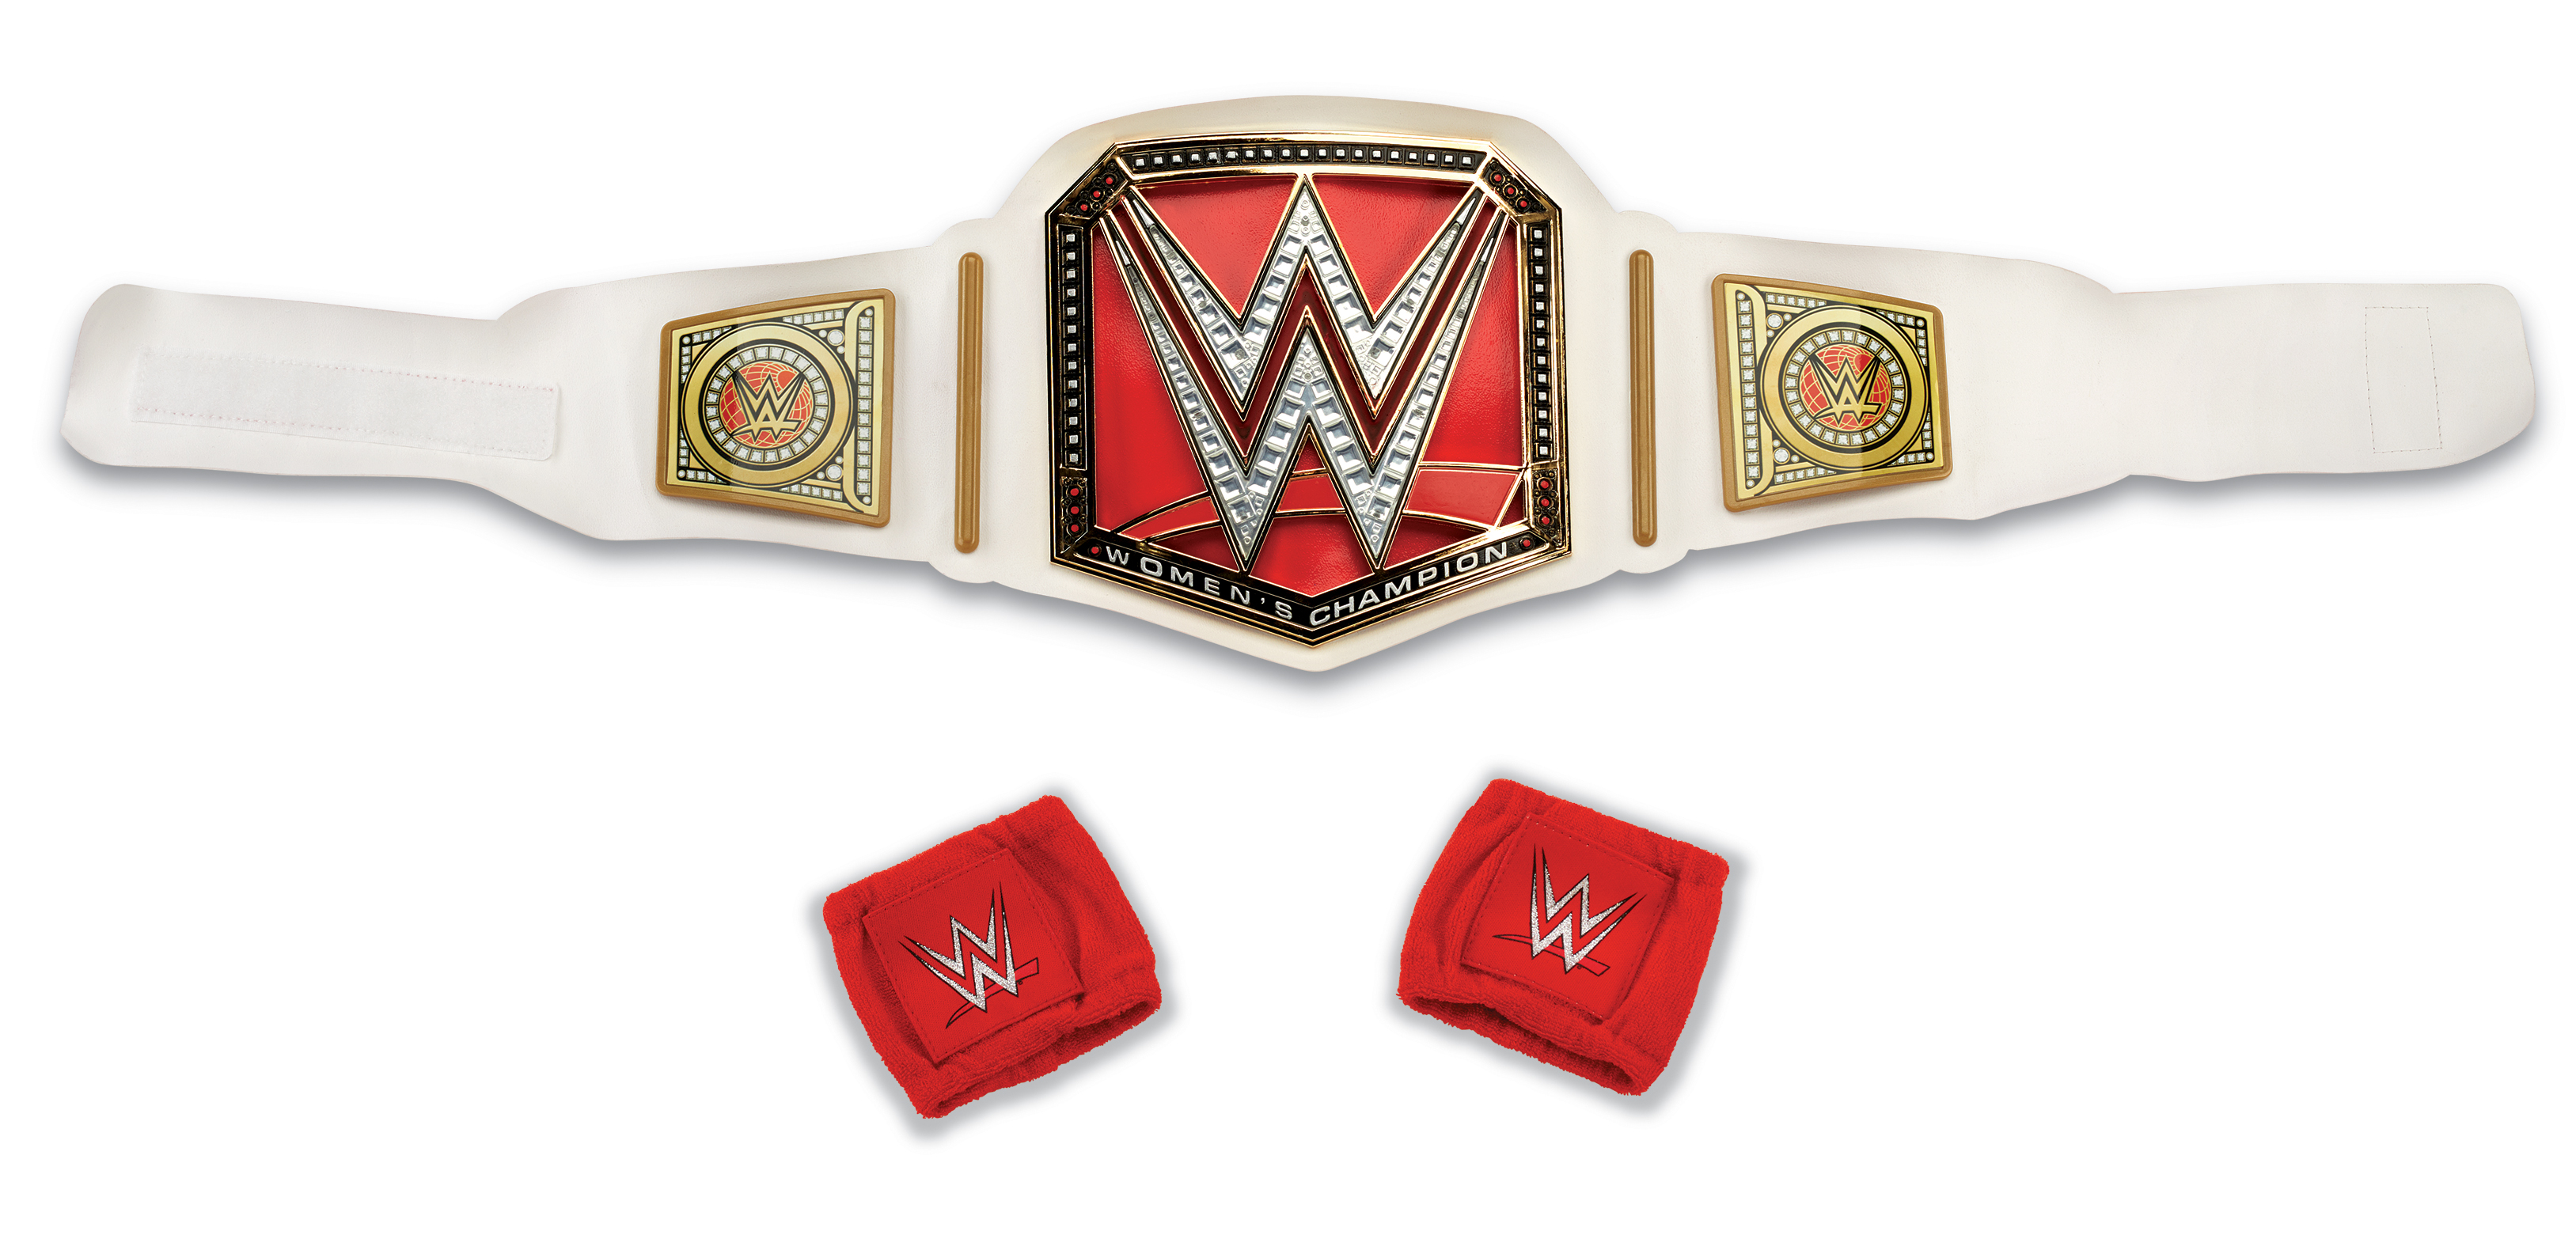 WWE Champion Adult Costume Accessory Belt and Wristbands Kit